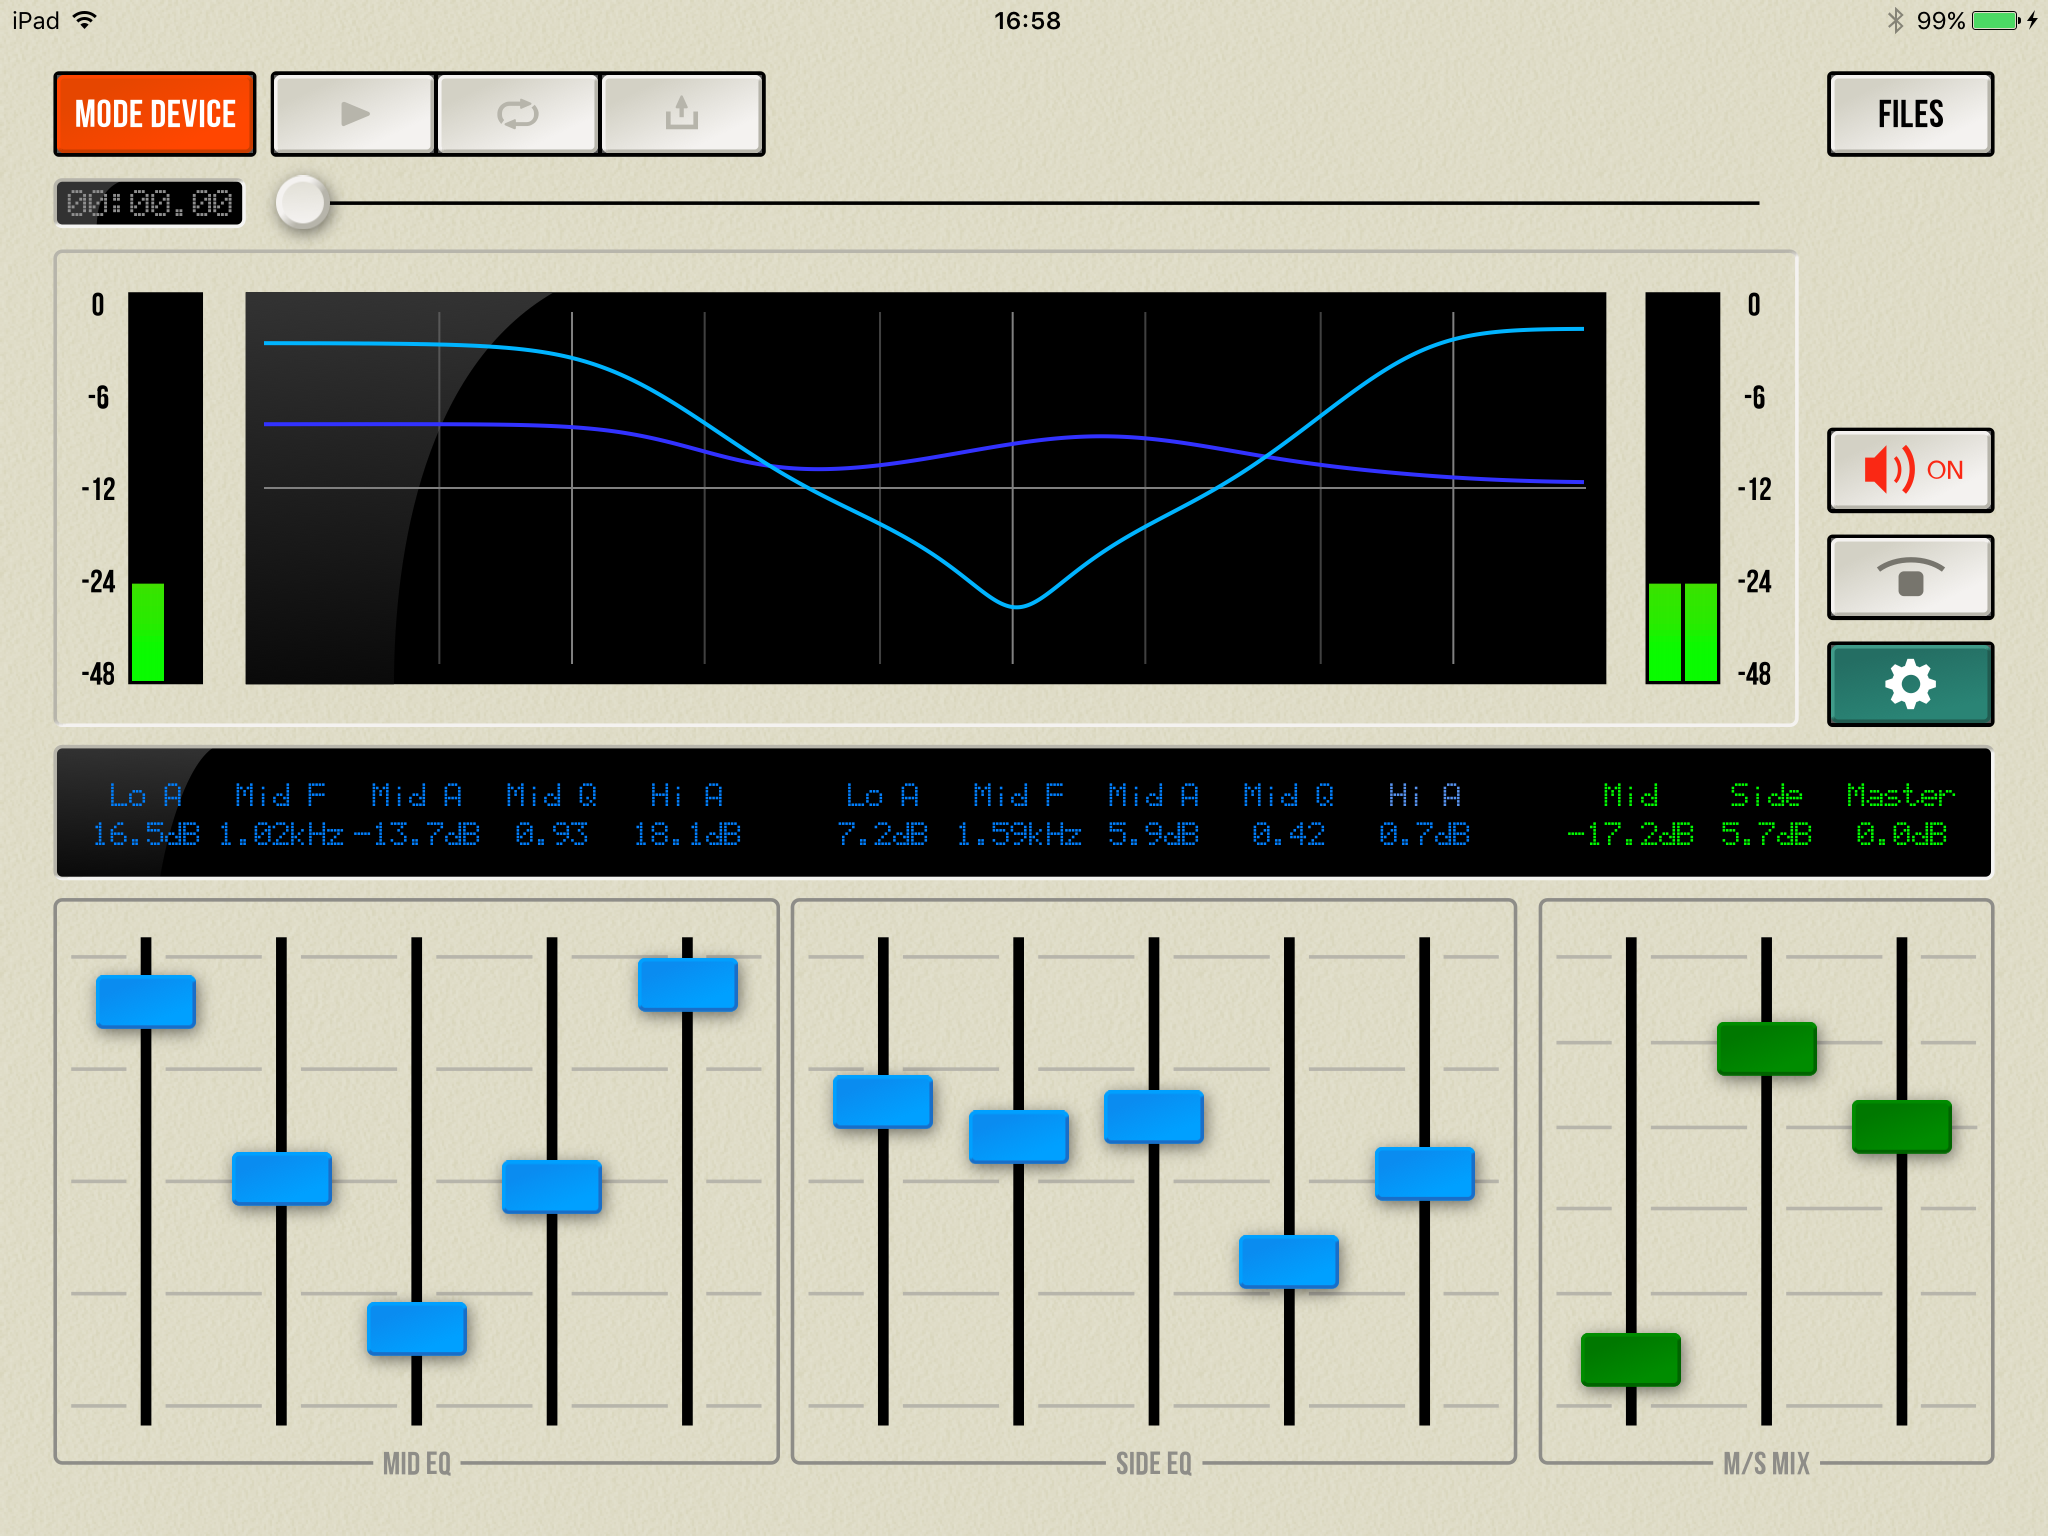 ART Teknika releases M/S Proc 1.0 for iOS - Mid/Side Level and EQ Image